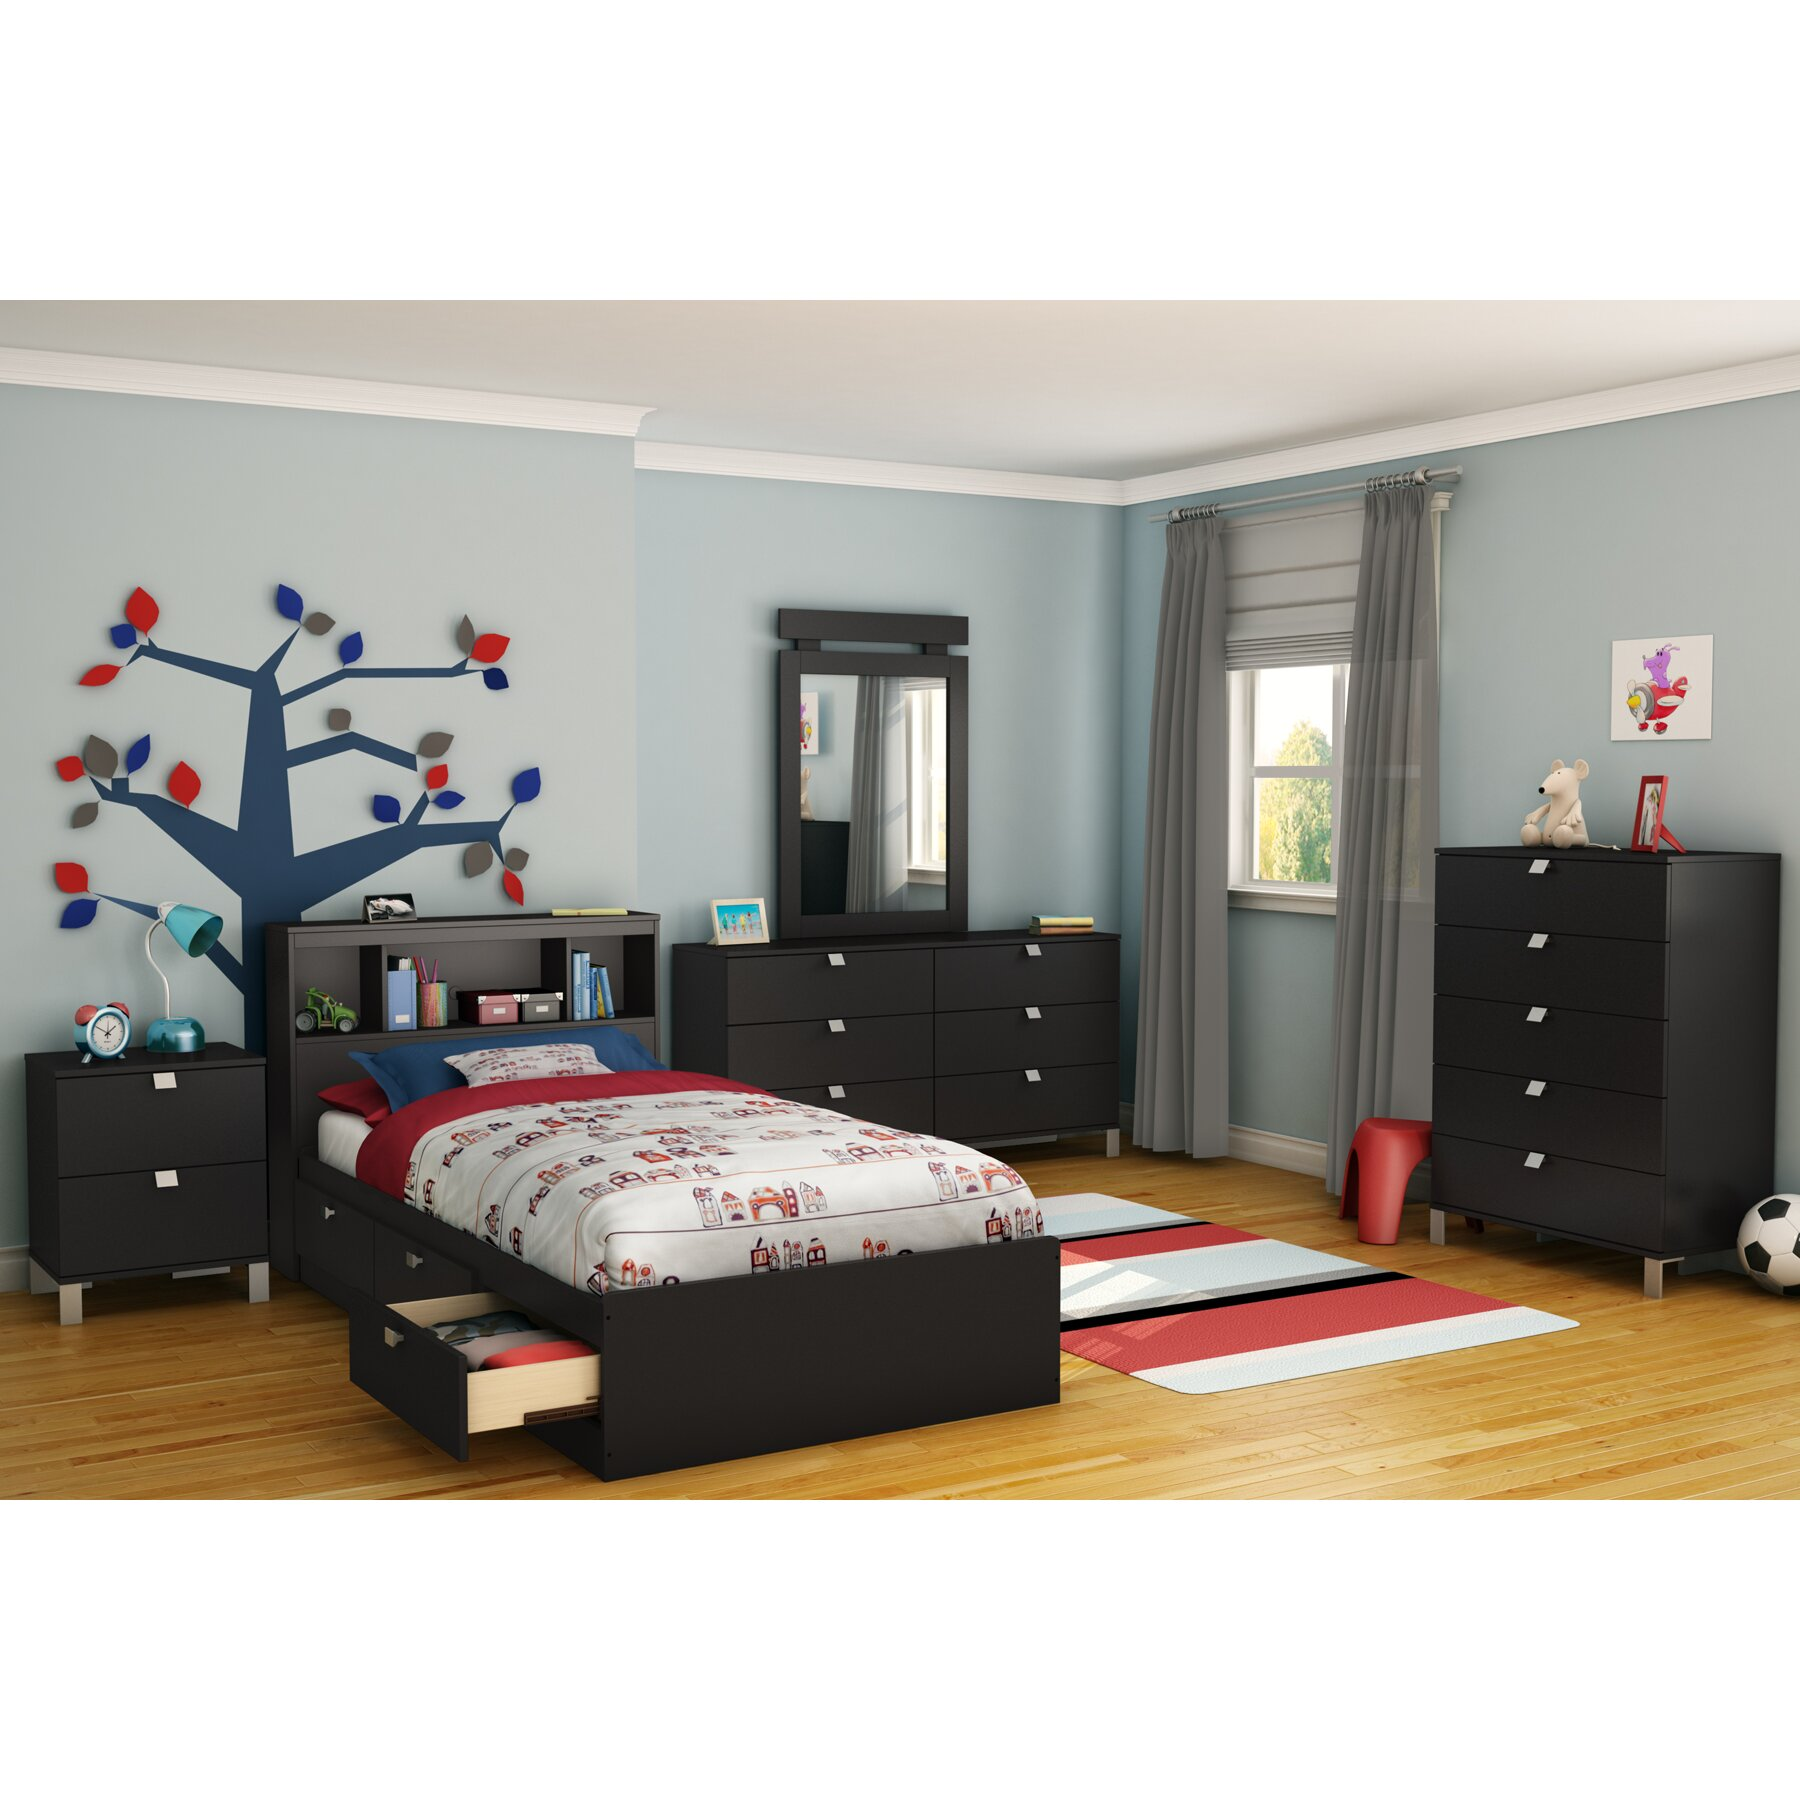 Quick View Spark Platform Customizable Bedroom Set